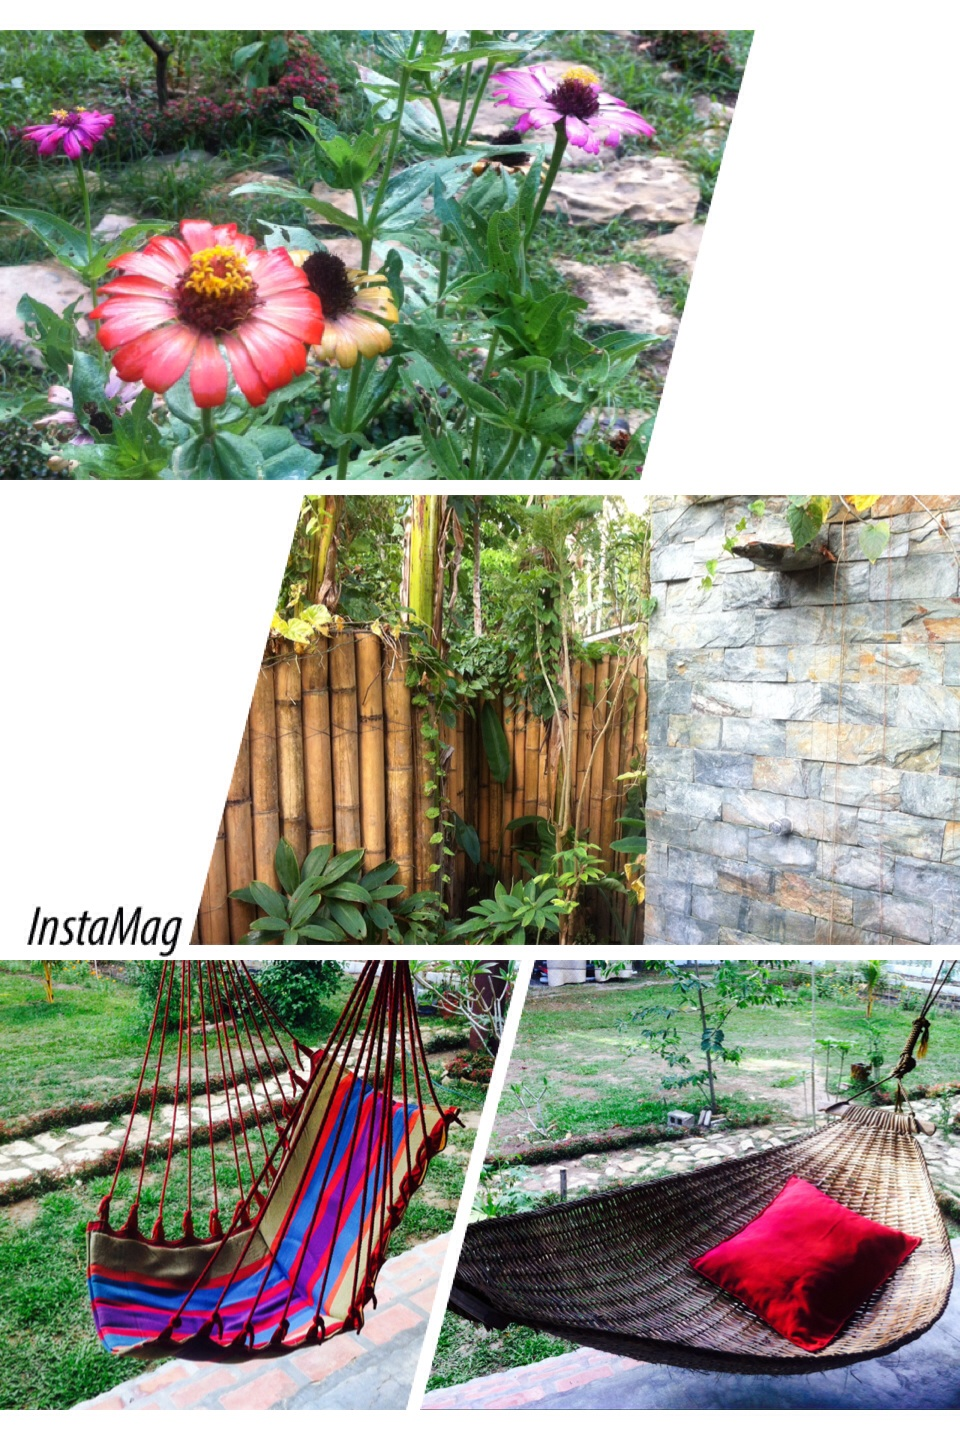 Relax in nature at the retreat center at the Loboc River - The Fox and the Firefly